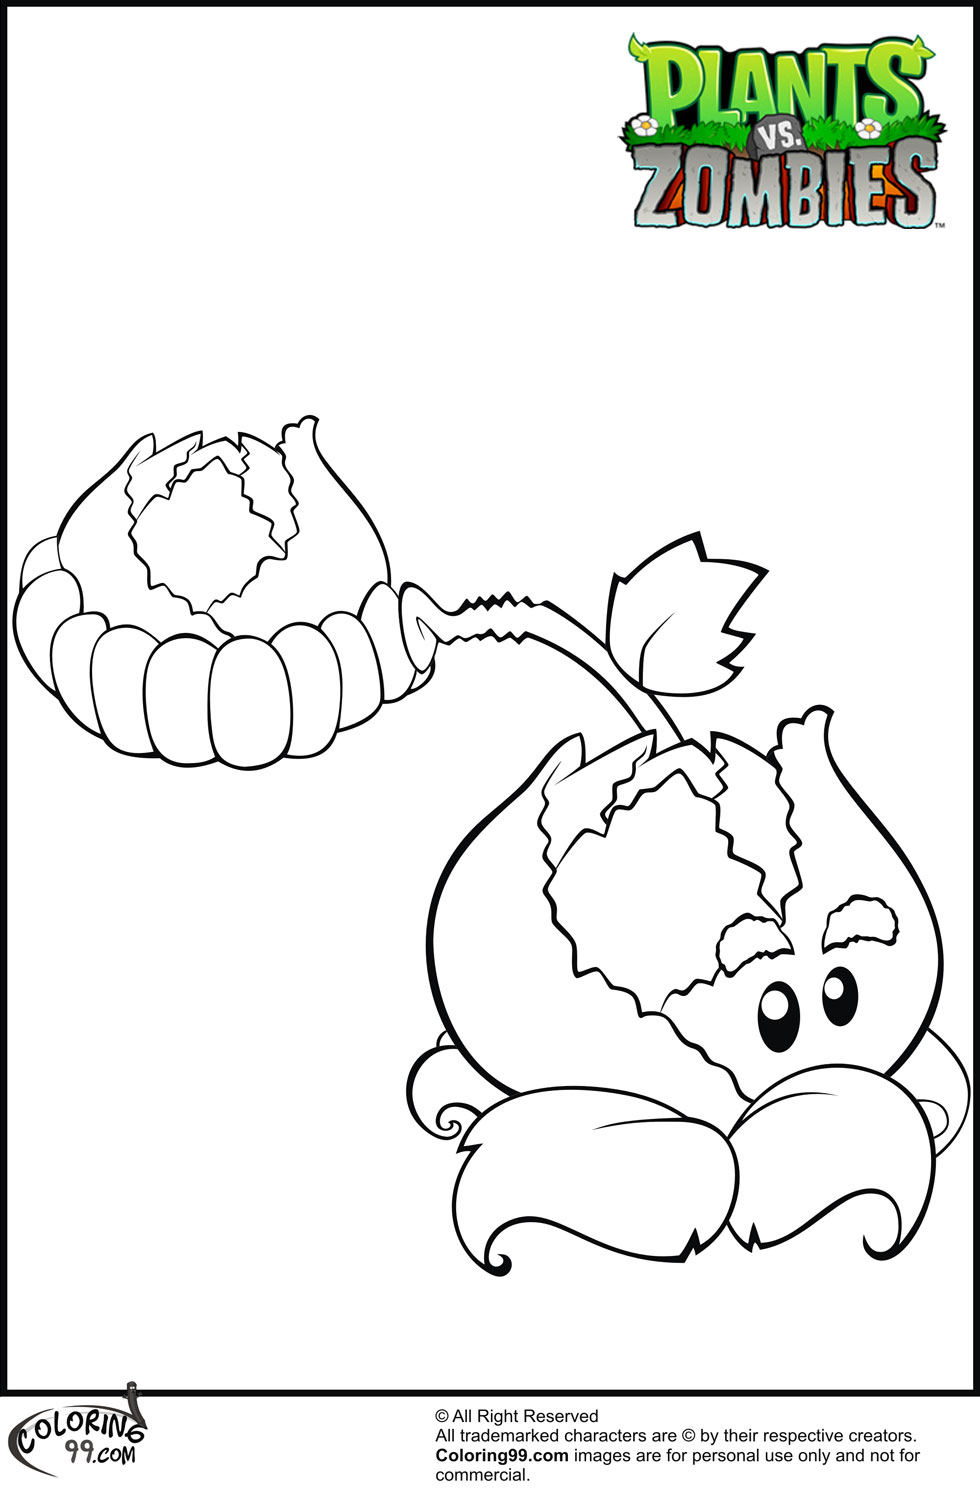 Coloring Pages For Plants Vs Zombies : Plants vs zombies coloring pages minister